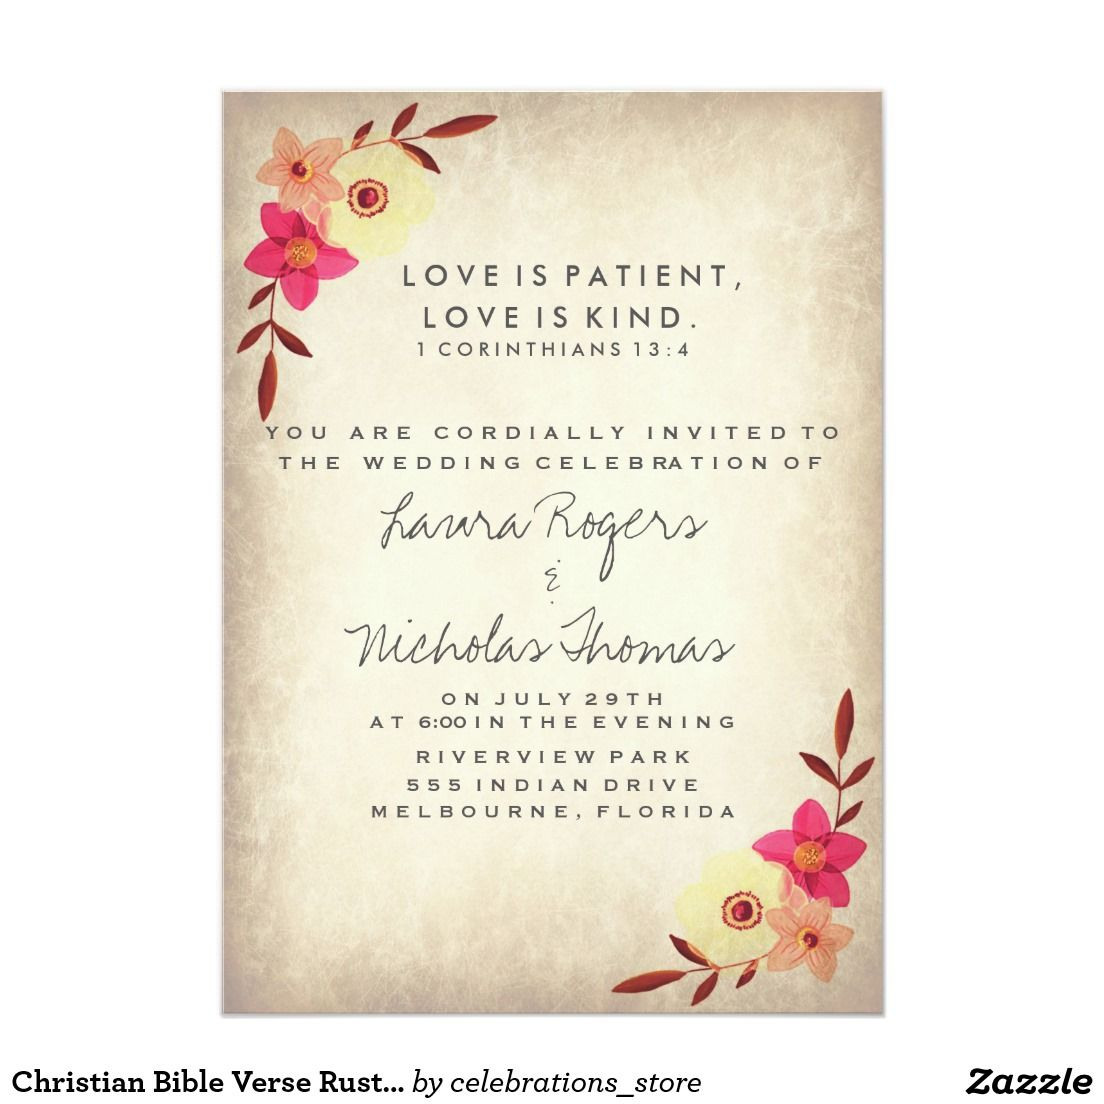 Christian Wedding Reception Ideas: Christian Bible Verse Rustic Country Floral 5x7 Paper